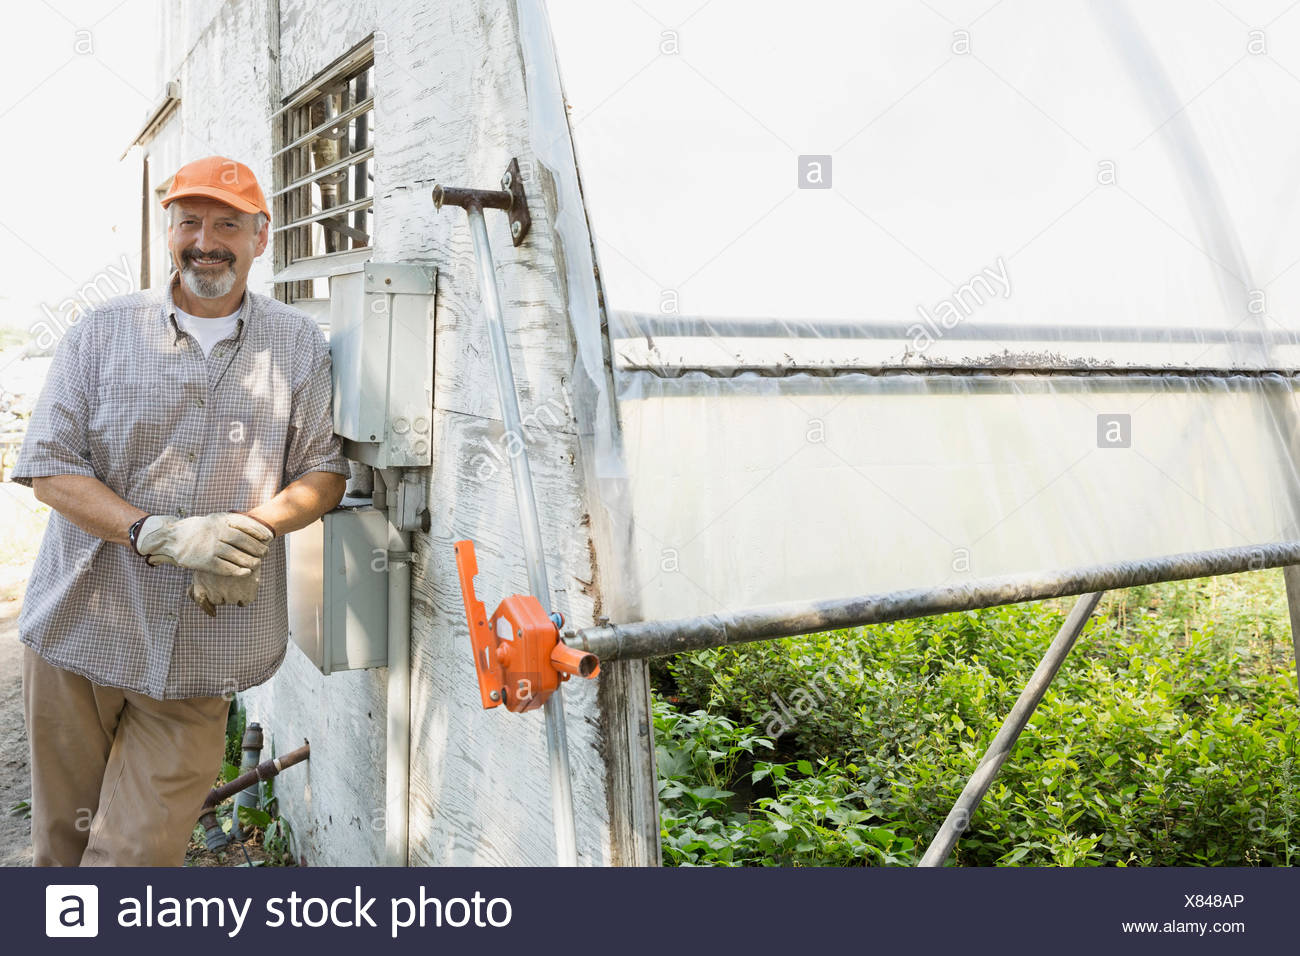 Portrait of smiling worker outside greenhouse - Stock Image